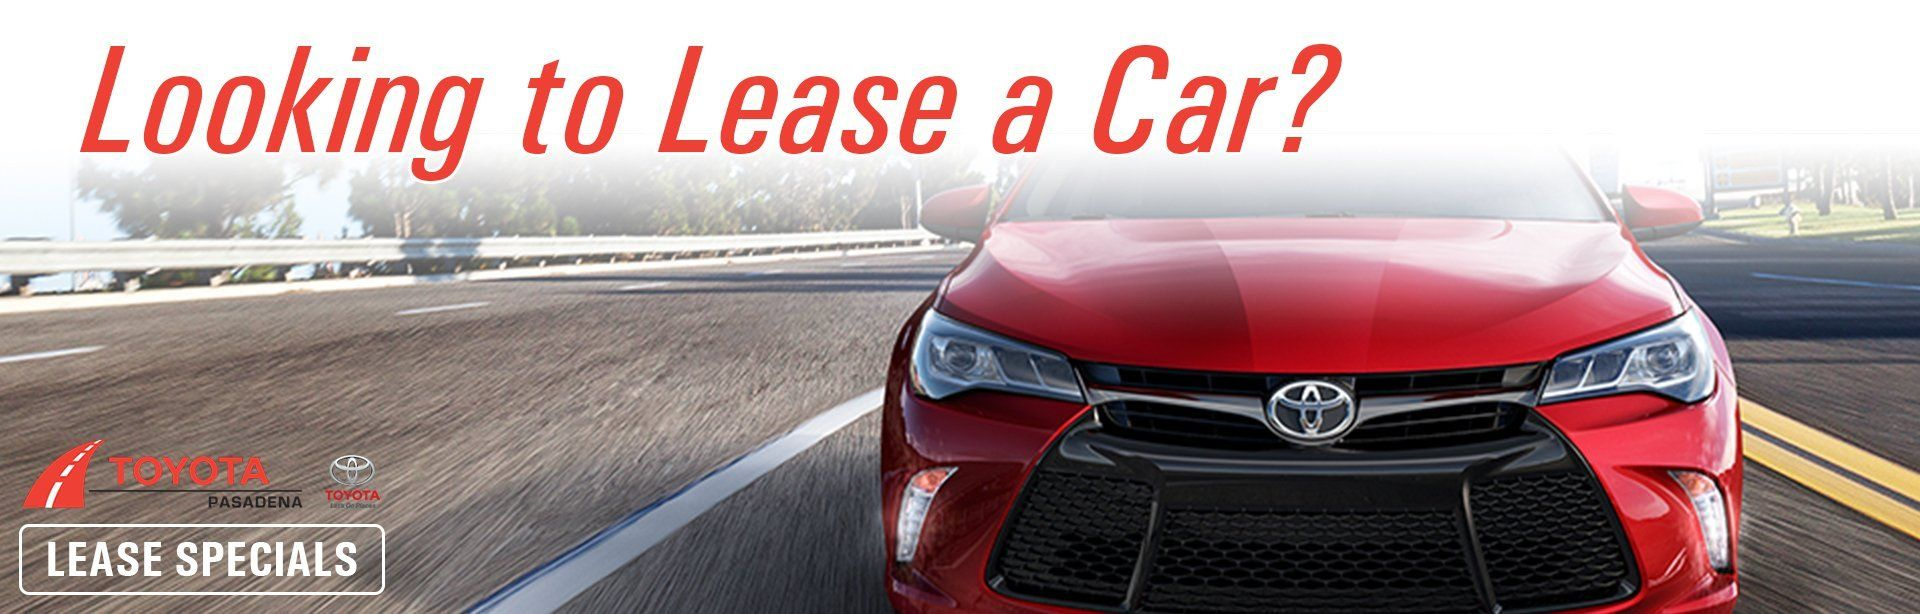 Toyota Pasadena Lease Specials Banner